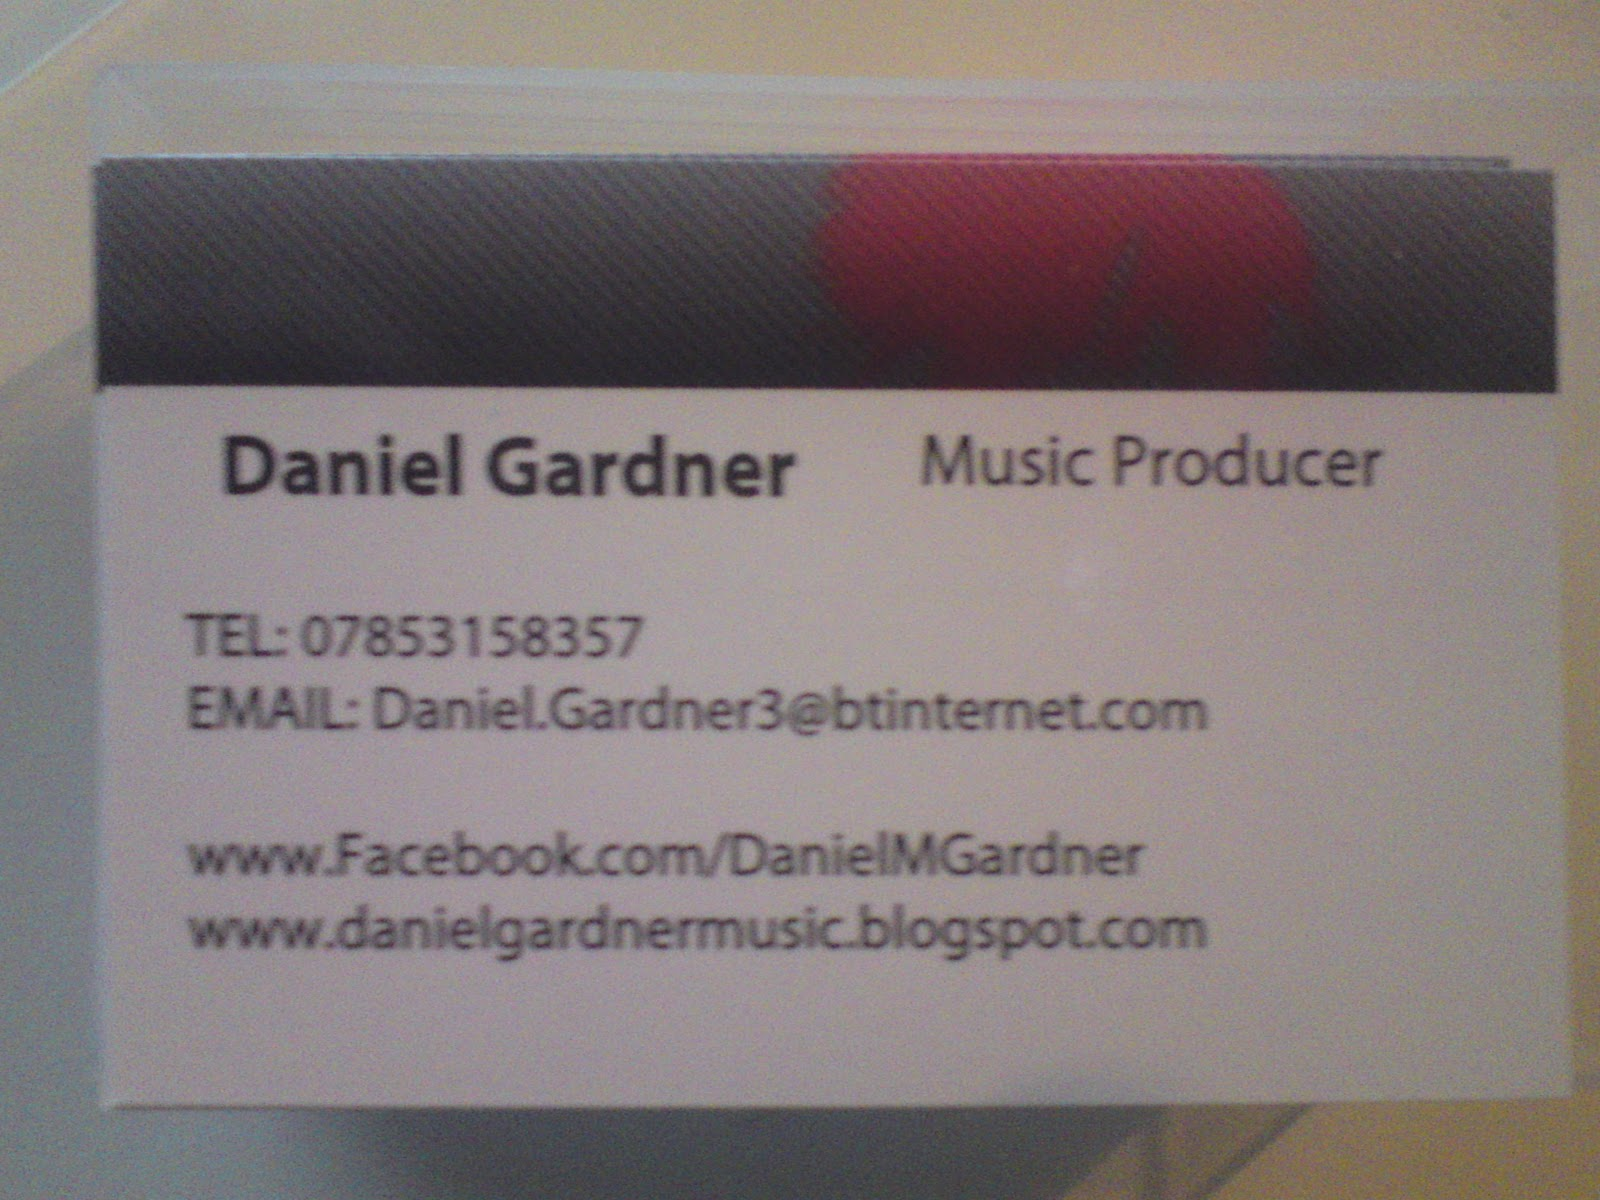 Daniel Gardner Music Producer Upgraded SoundCloud Account